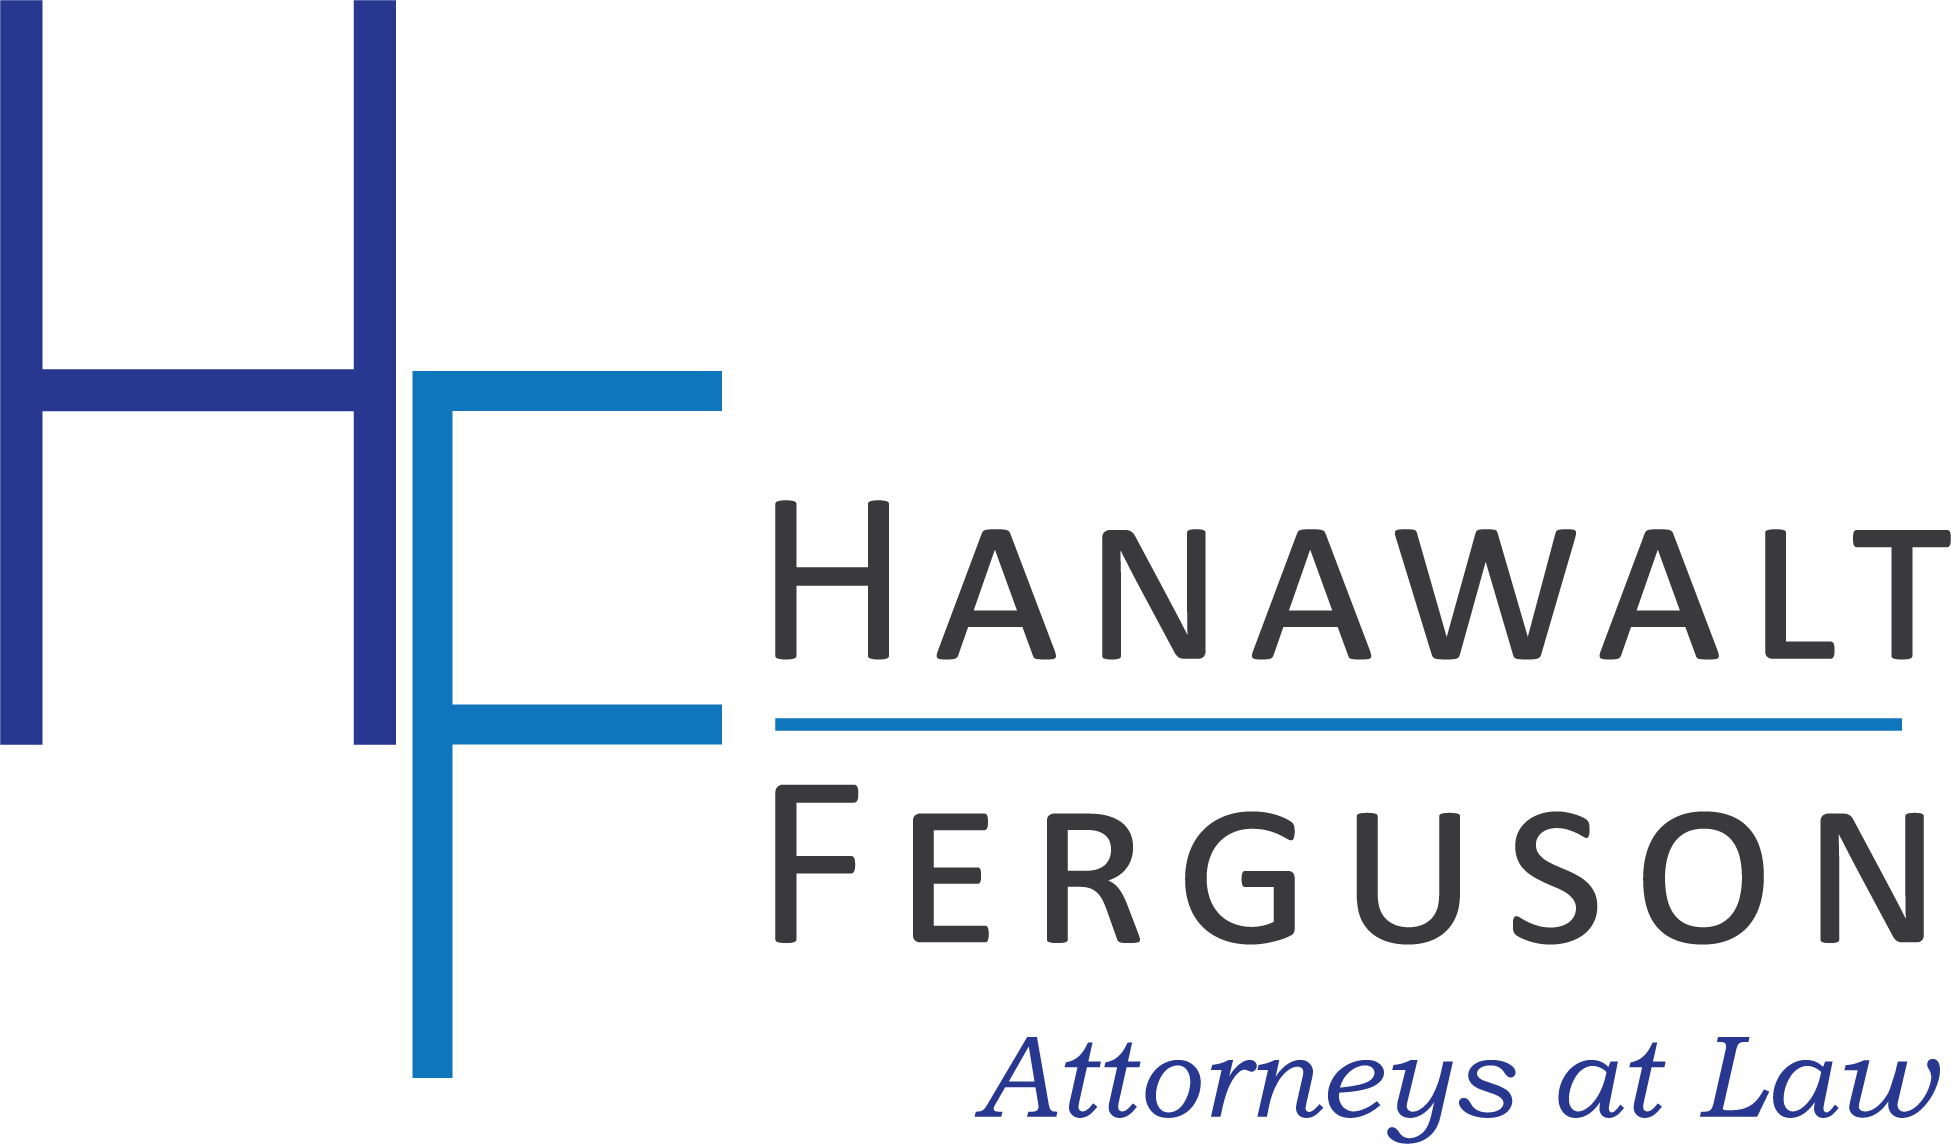 Hanawalt Ferguson, Attorneys at Law